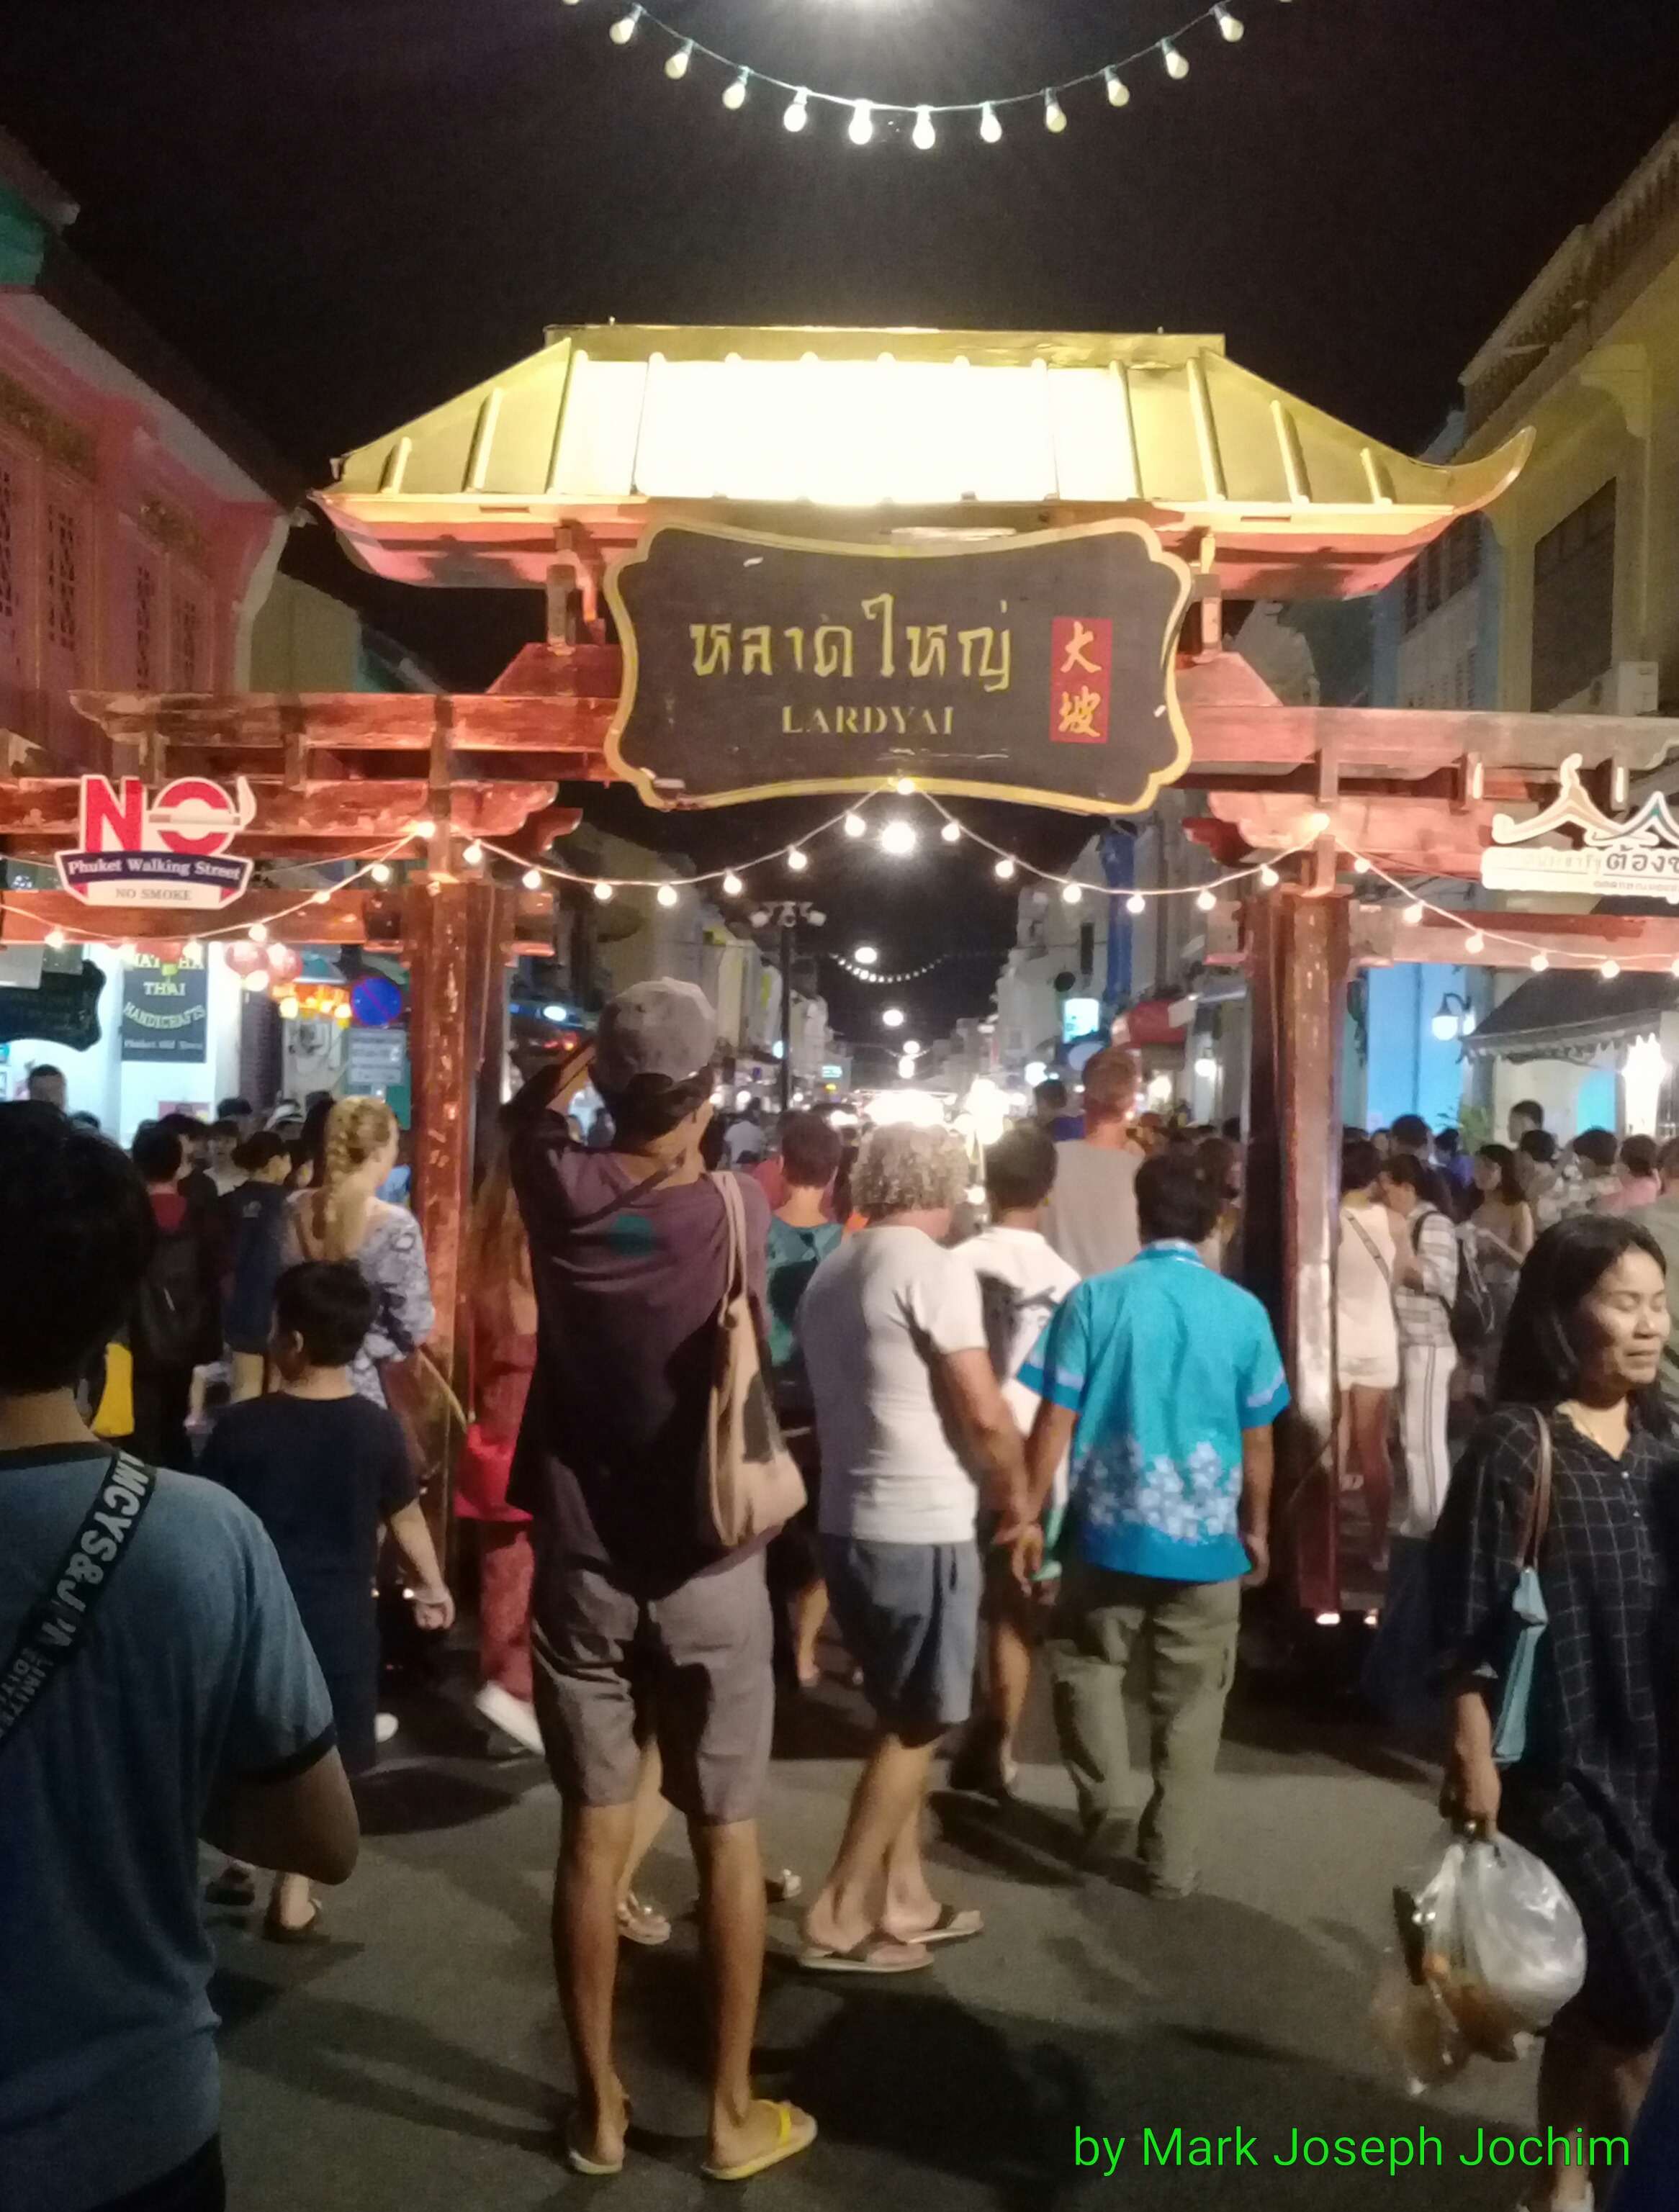 Eastern entrance to Lard Yai, the weekly Walking Street set up along Thalang Road in Phuket Old Town, Thailand, each Sunday from approximately 16:00 until 20:30. Photo taken on January 20, 2019.